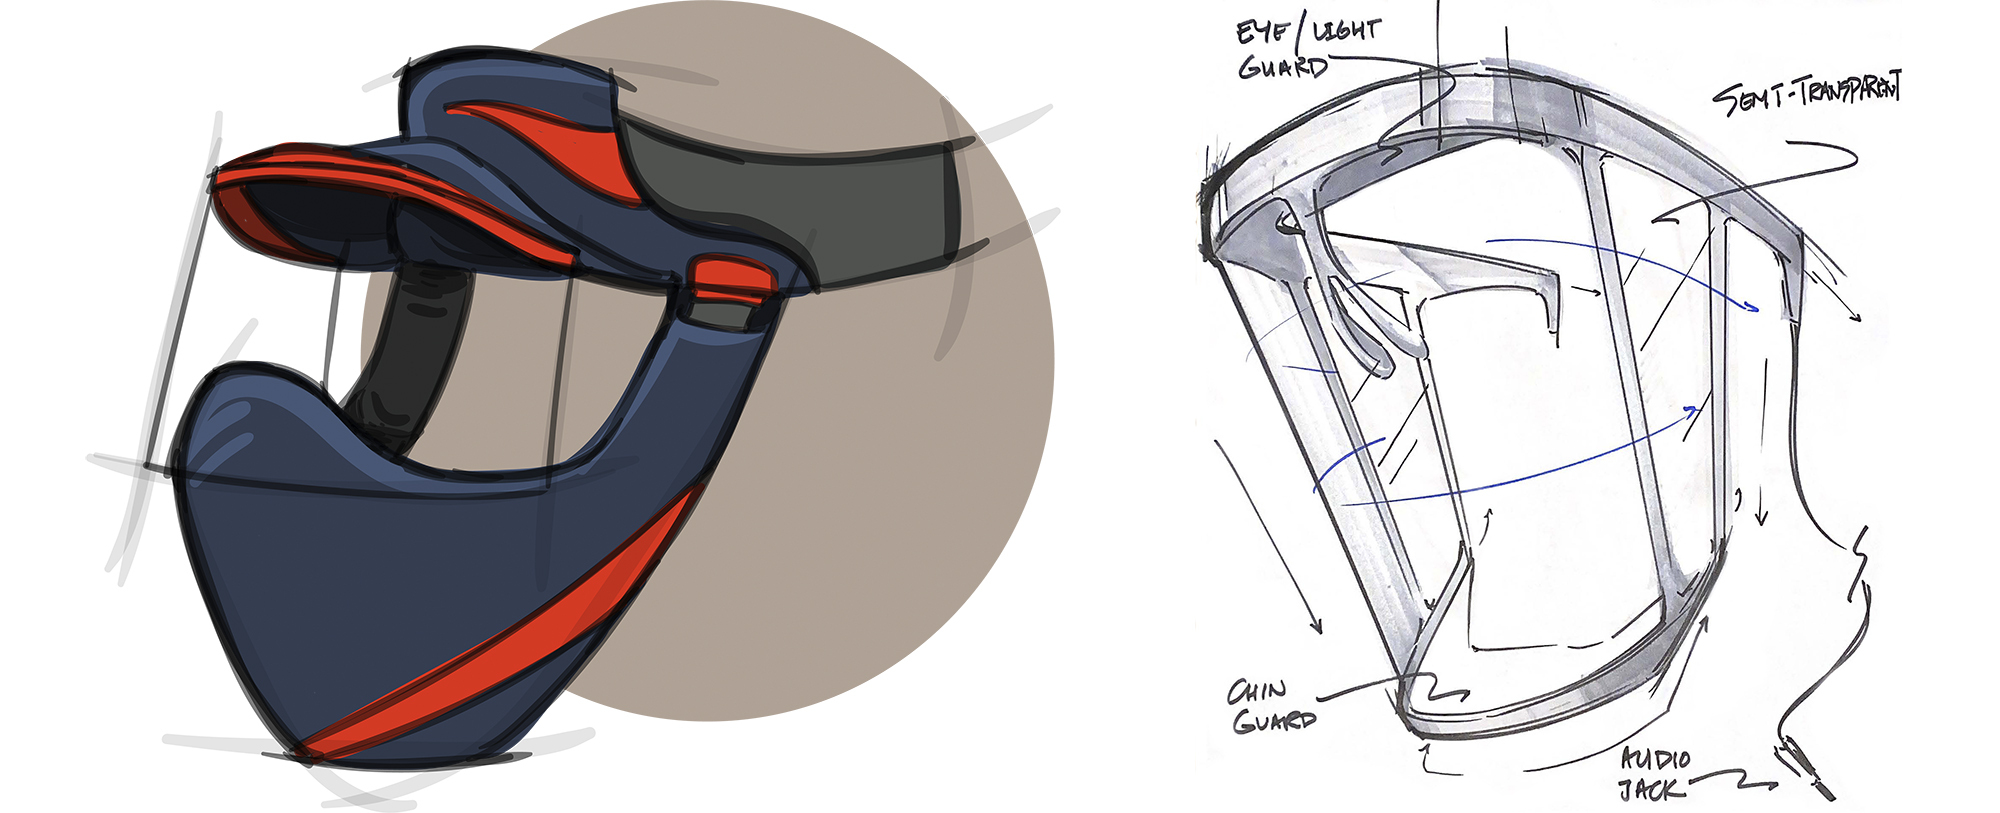 INDUSTRIAL DESIGN STUDENTS IMPROVE PPE FOR CONSTRUCTION WORK, HEALTHCARE, HOSPITALITY, TEACHING